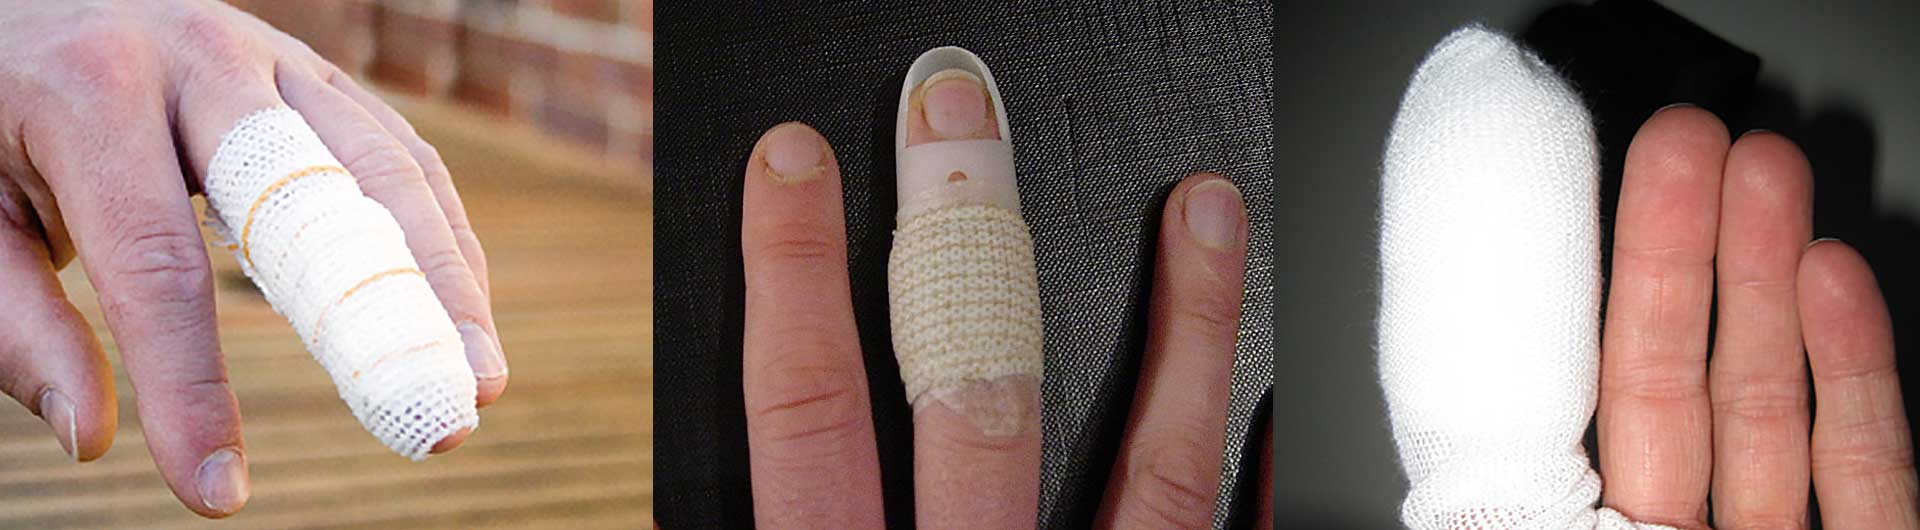 injured fingers